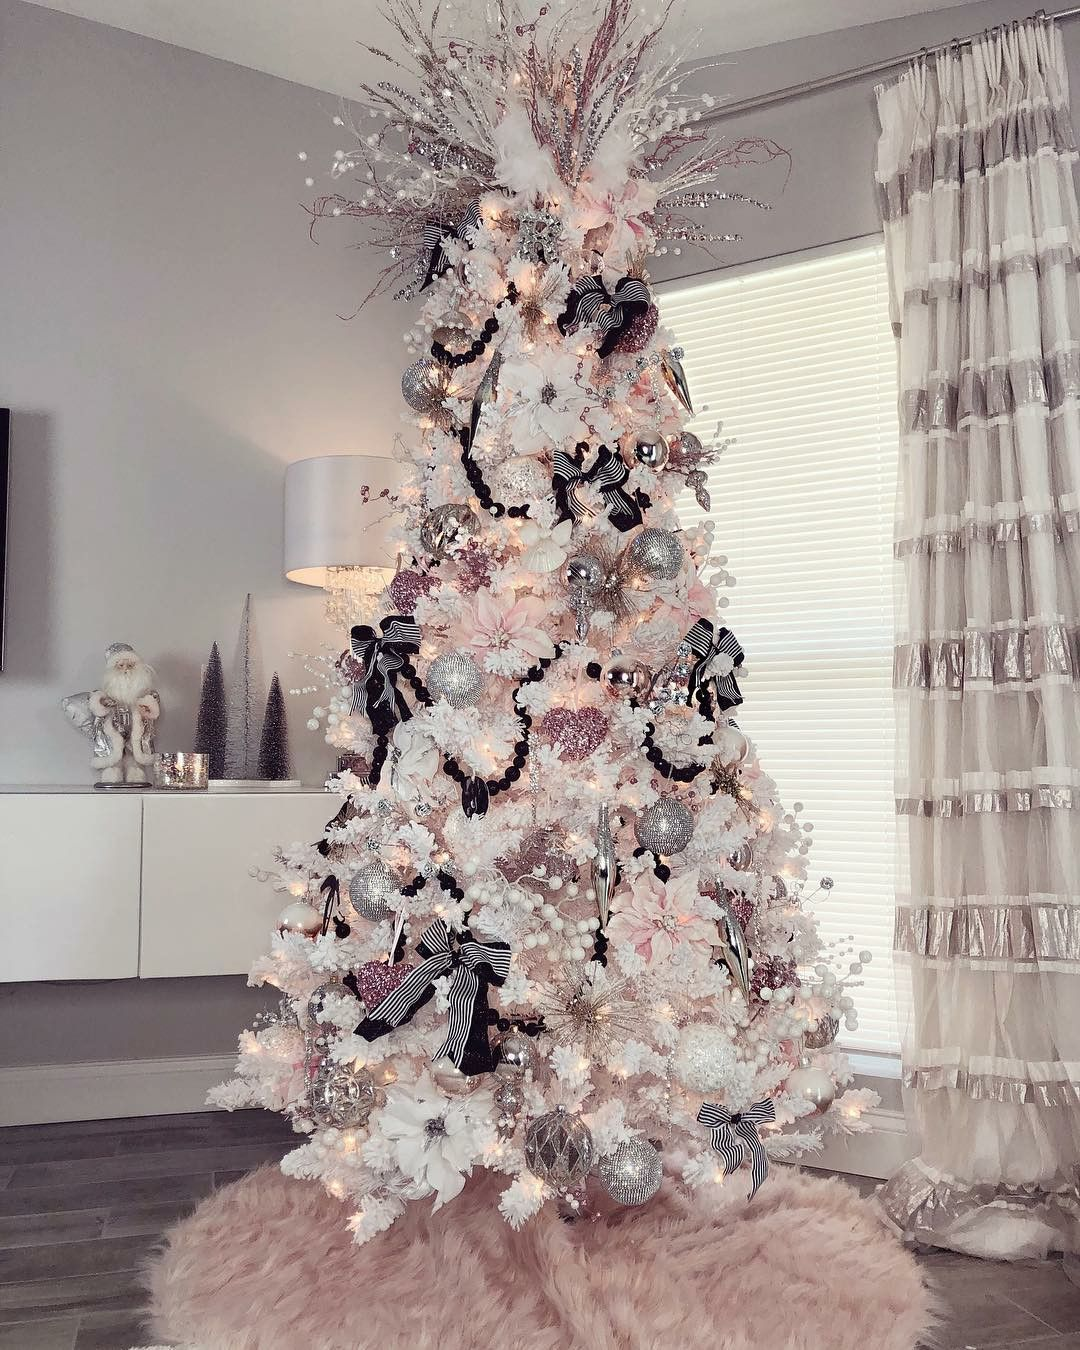 Pin By Candice Gutsche On Decor Adore Elegant Christmas Trees Pink Christmas Decorations Rose Gold Christmas Tree